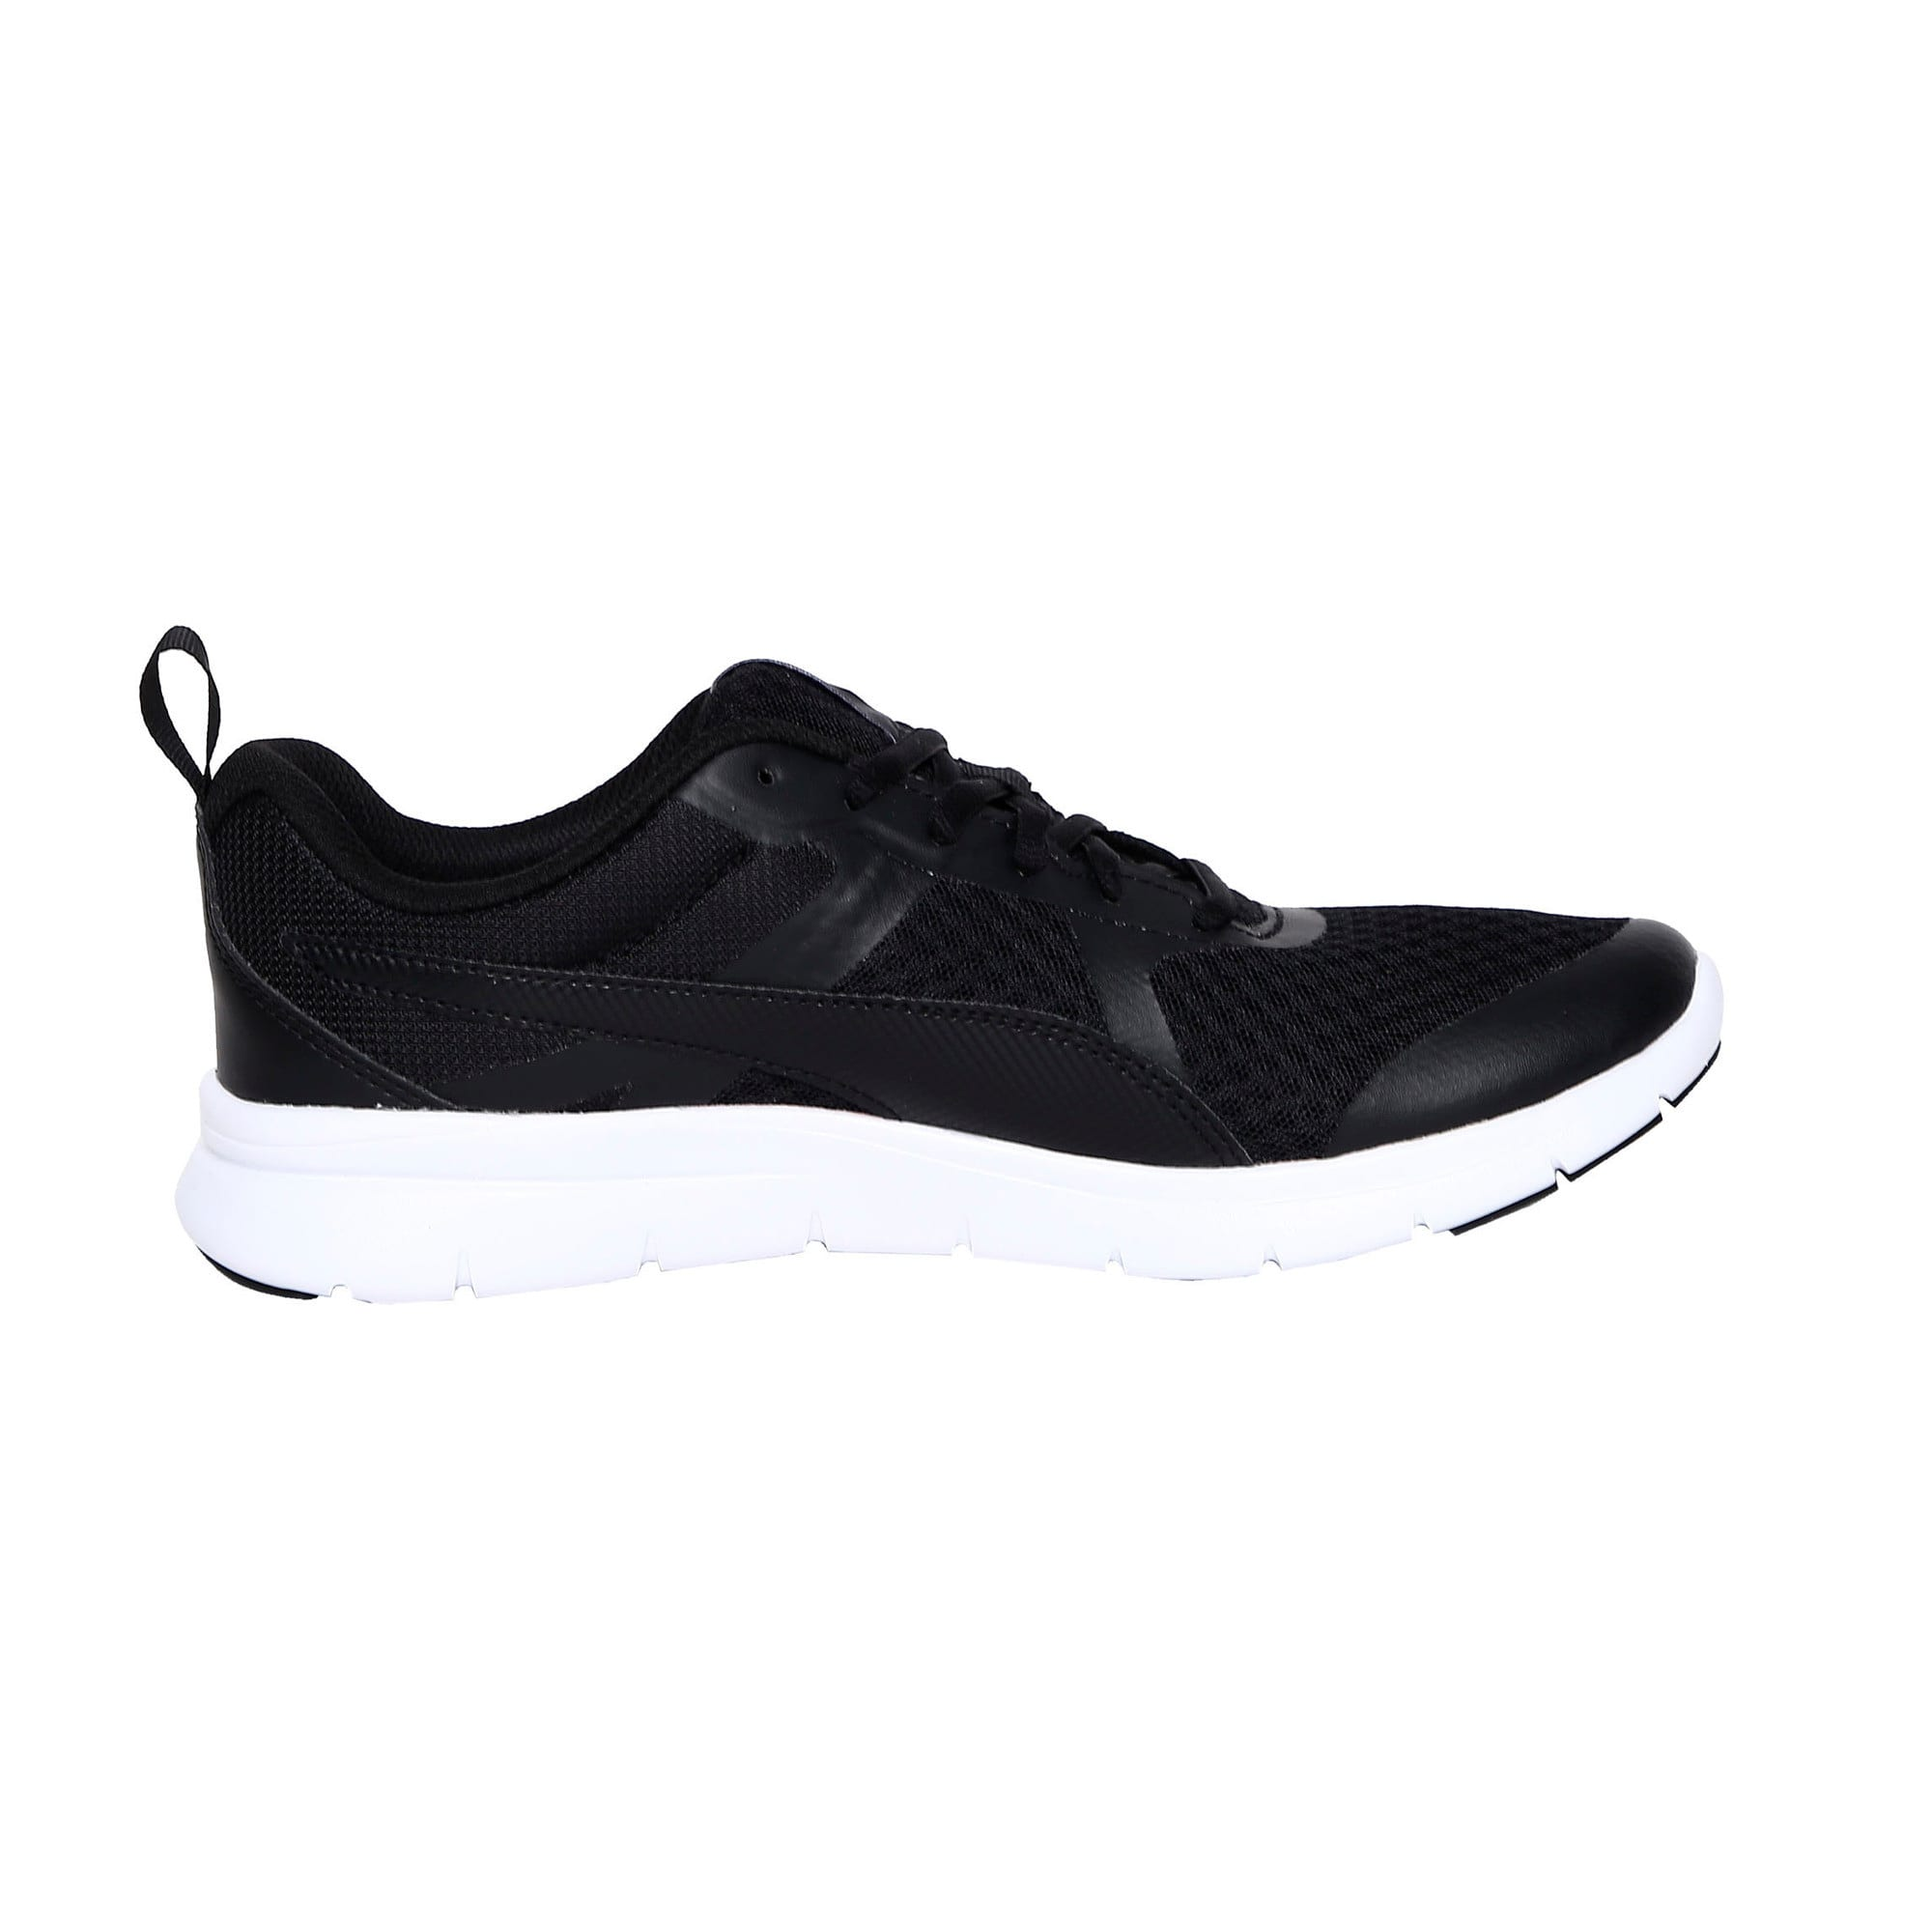 Thumbnail 5 of Flex Essential Trainers, Puma Black-Puma Black, medium-IND